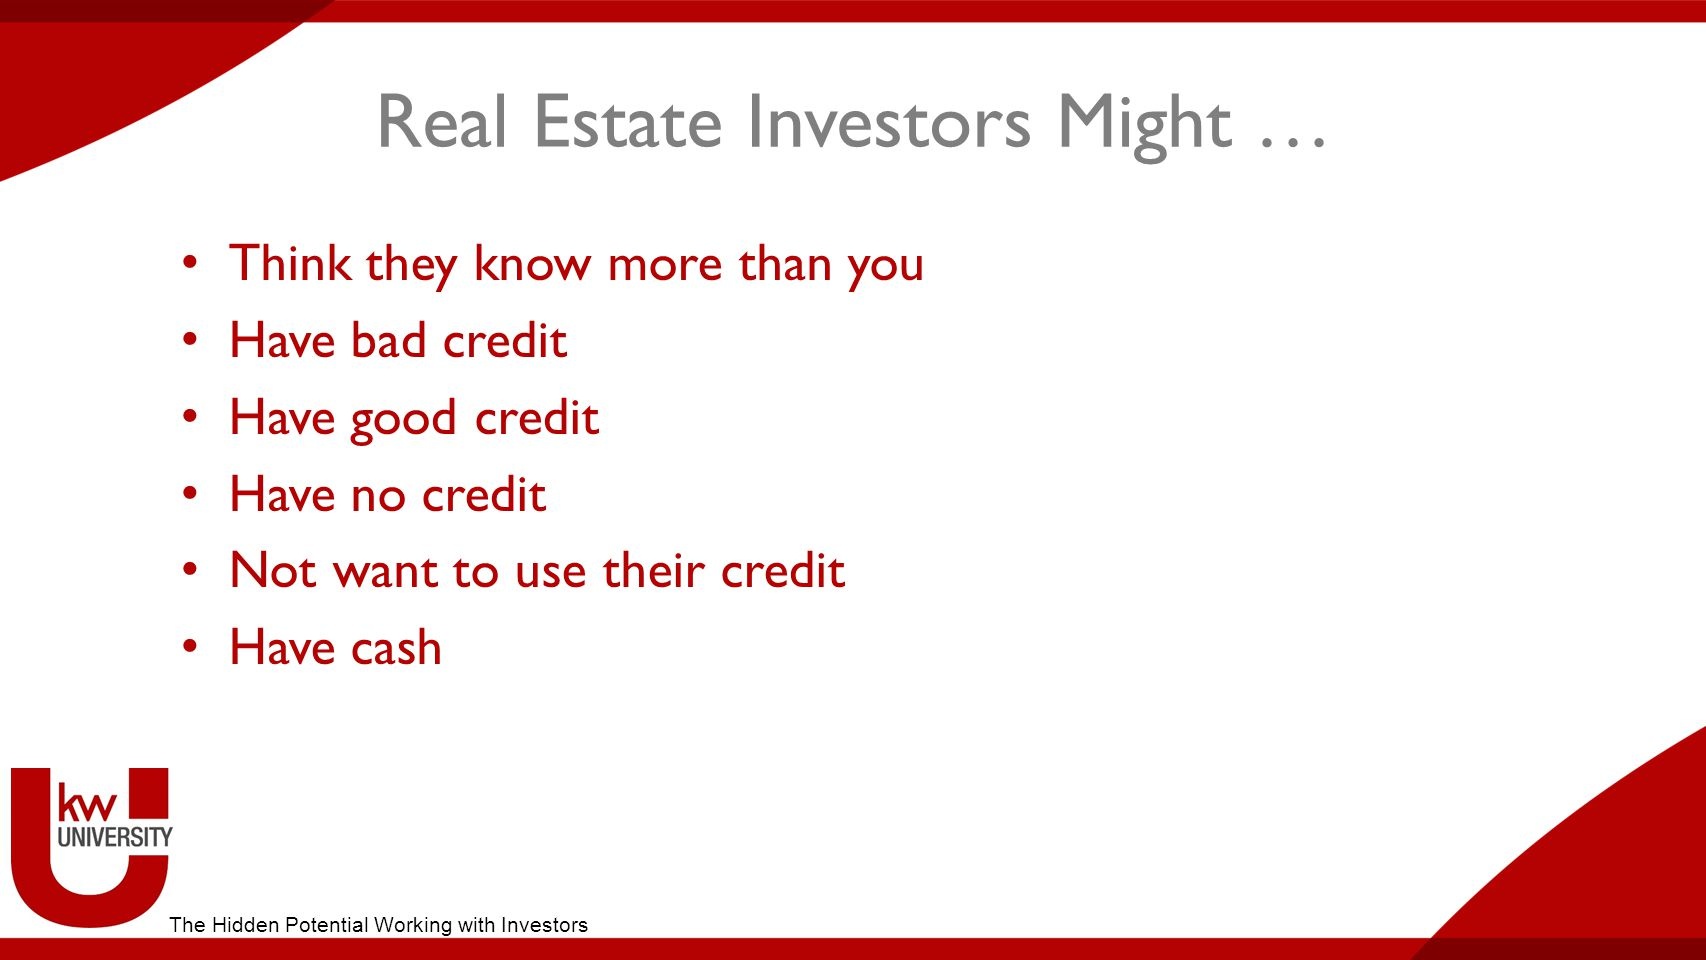 Real Estate Investors Might … Think they know more than you Have bad credit Have good credit Have no credit Not want to use their credit Have cash The Hidden Potential Working with Investors